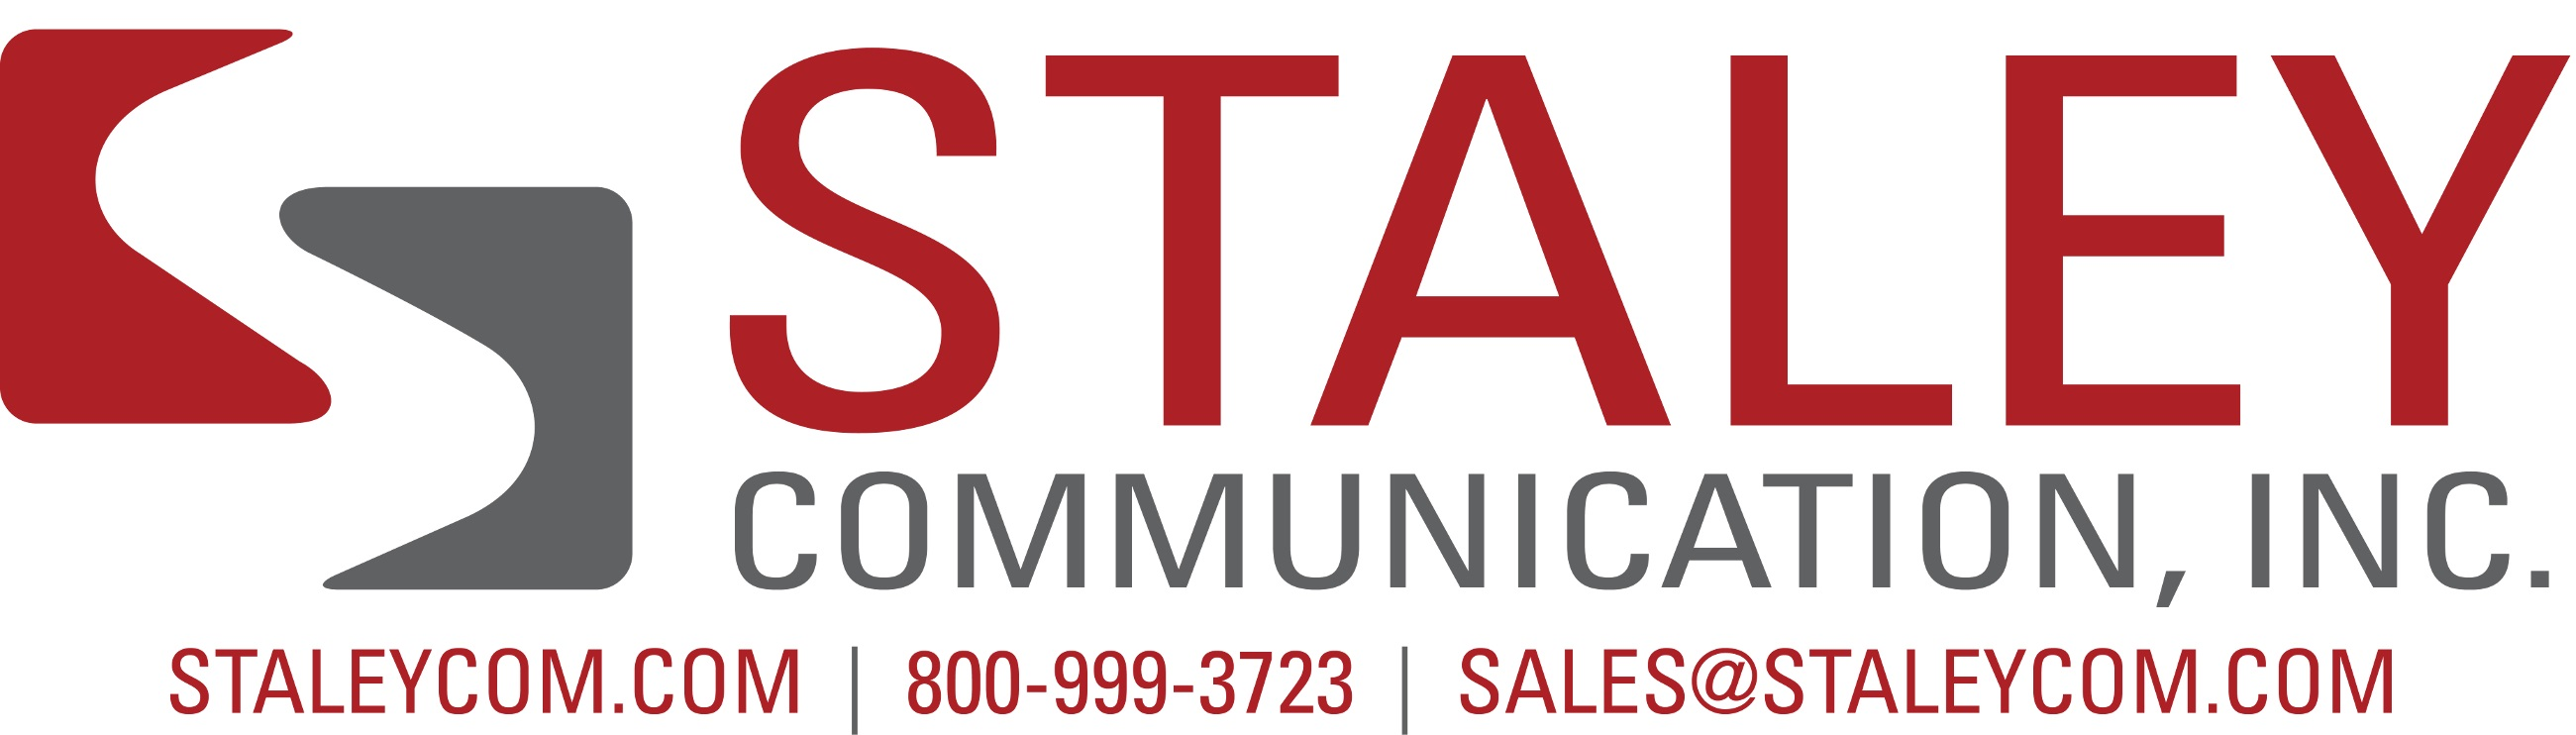 Staley Communication